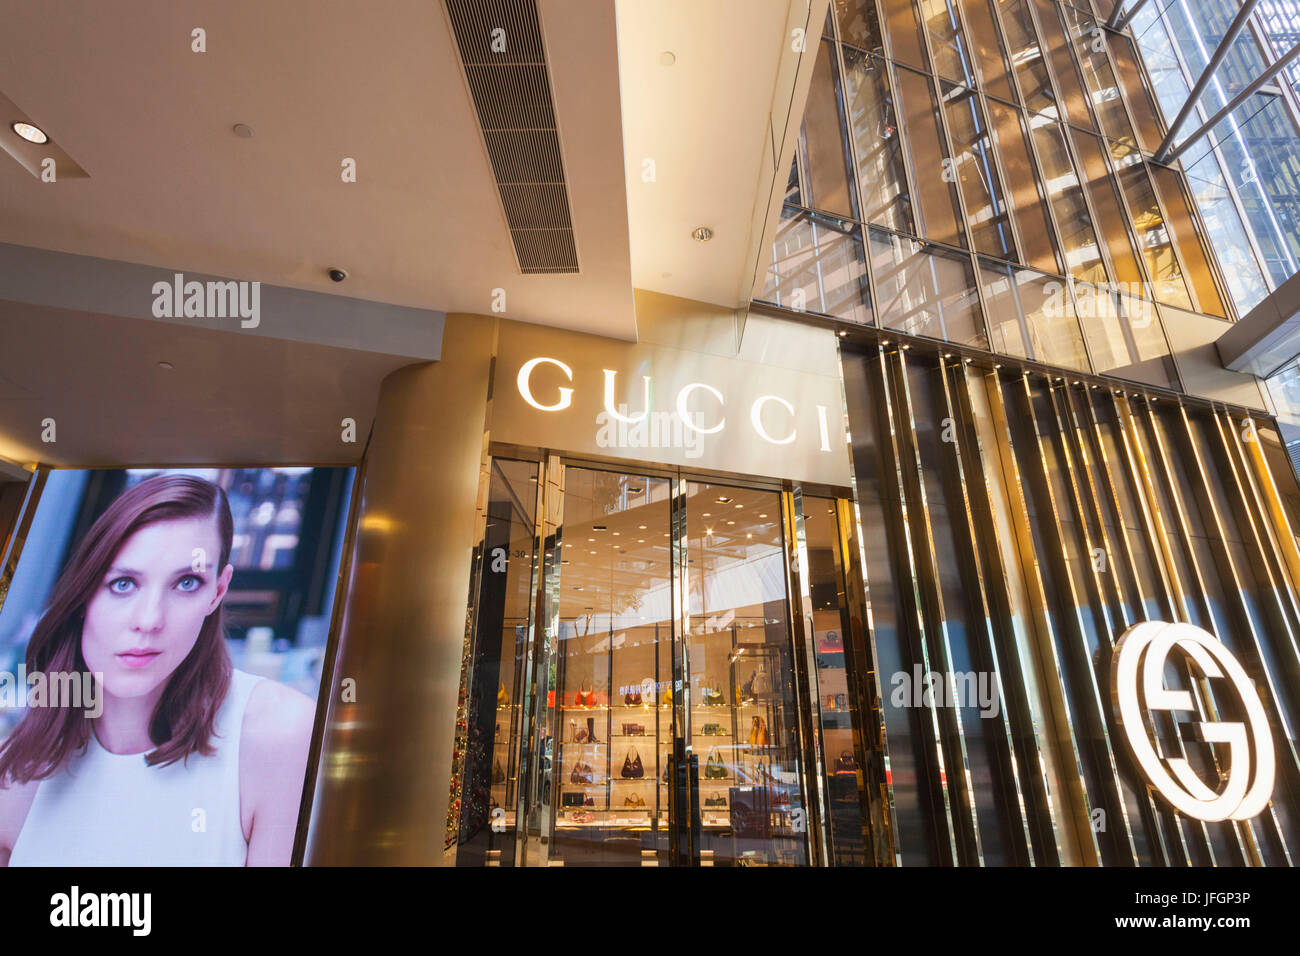 696c4f7b34 China, Hong Kong, Central, Landmark, Gucci Store Stock Photo ...